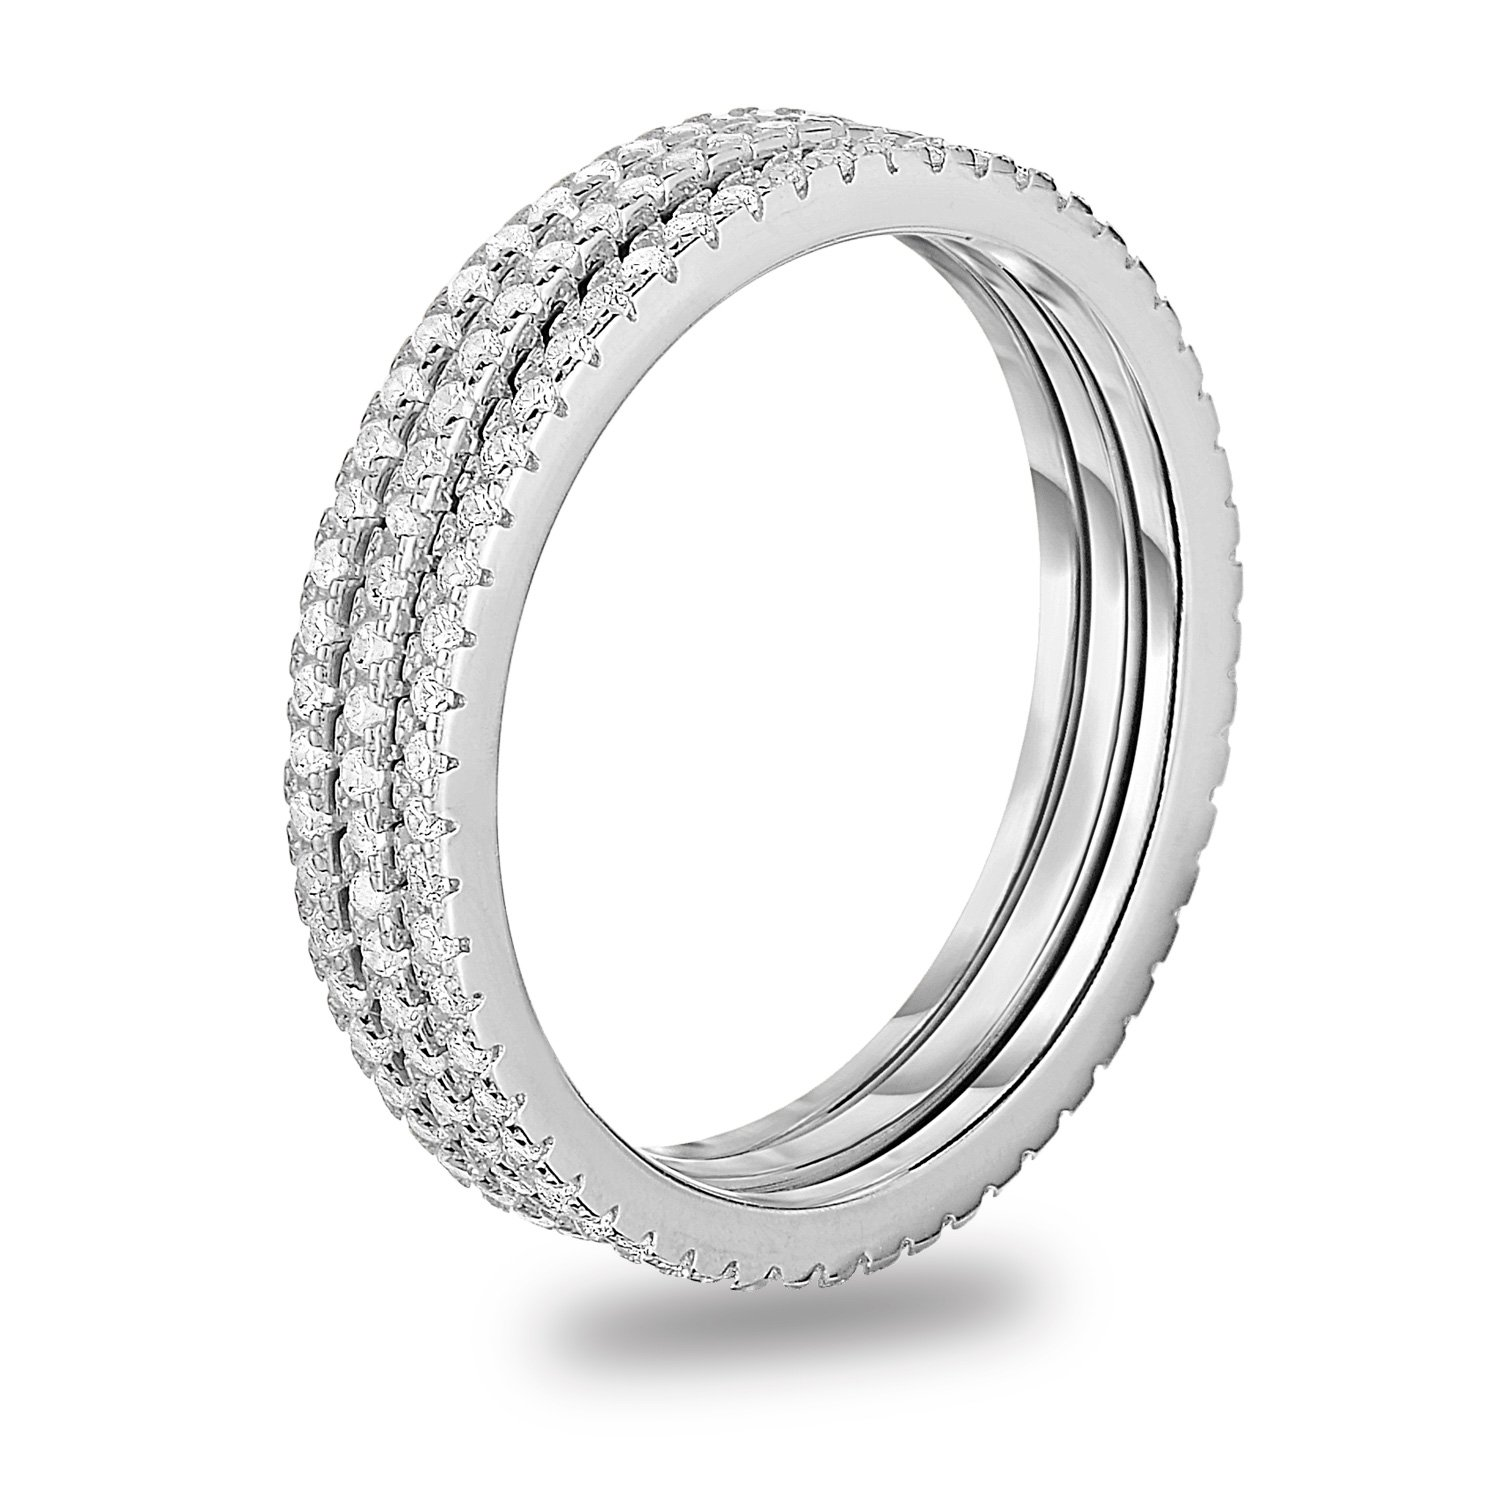 Rhodium-Plated Sterling Silver Cubic Zirconia 3pcs Stackable Eternity Wedding Band Ring, Size 6